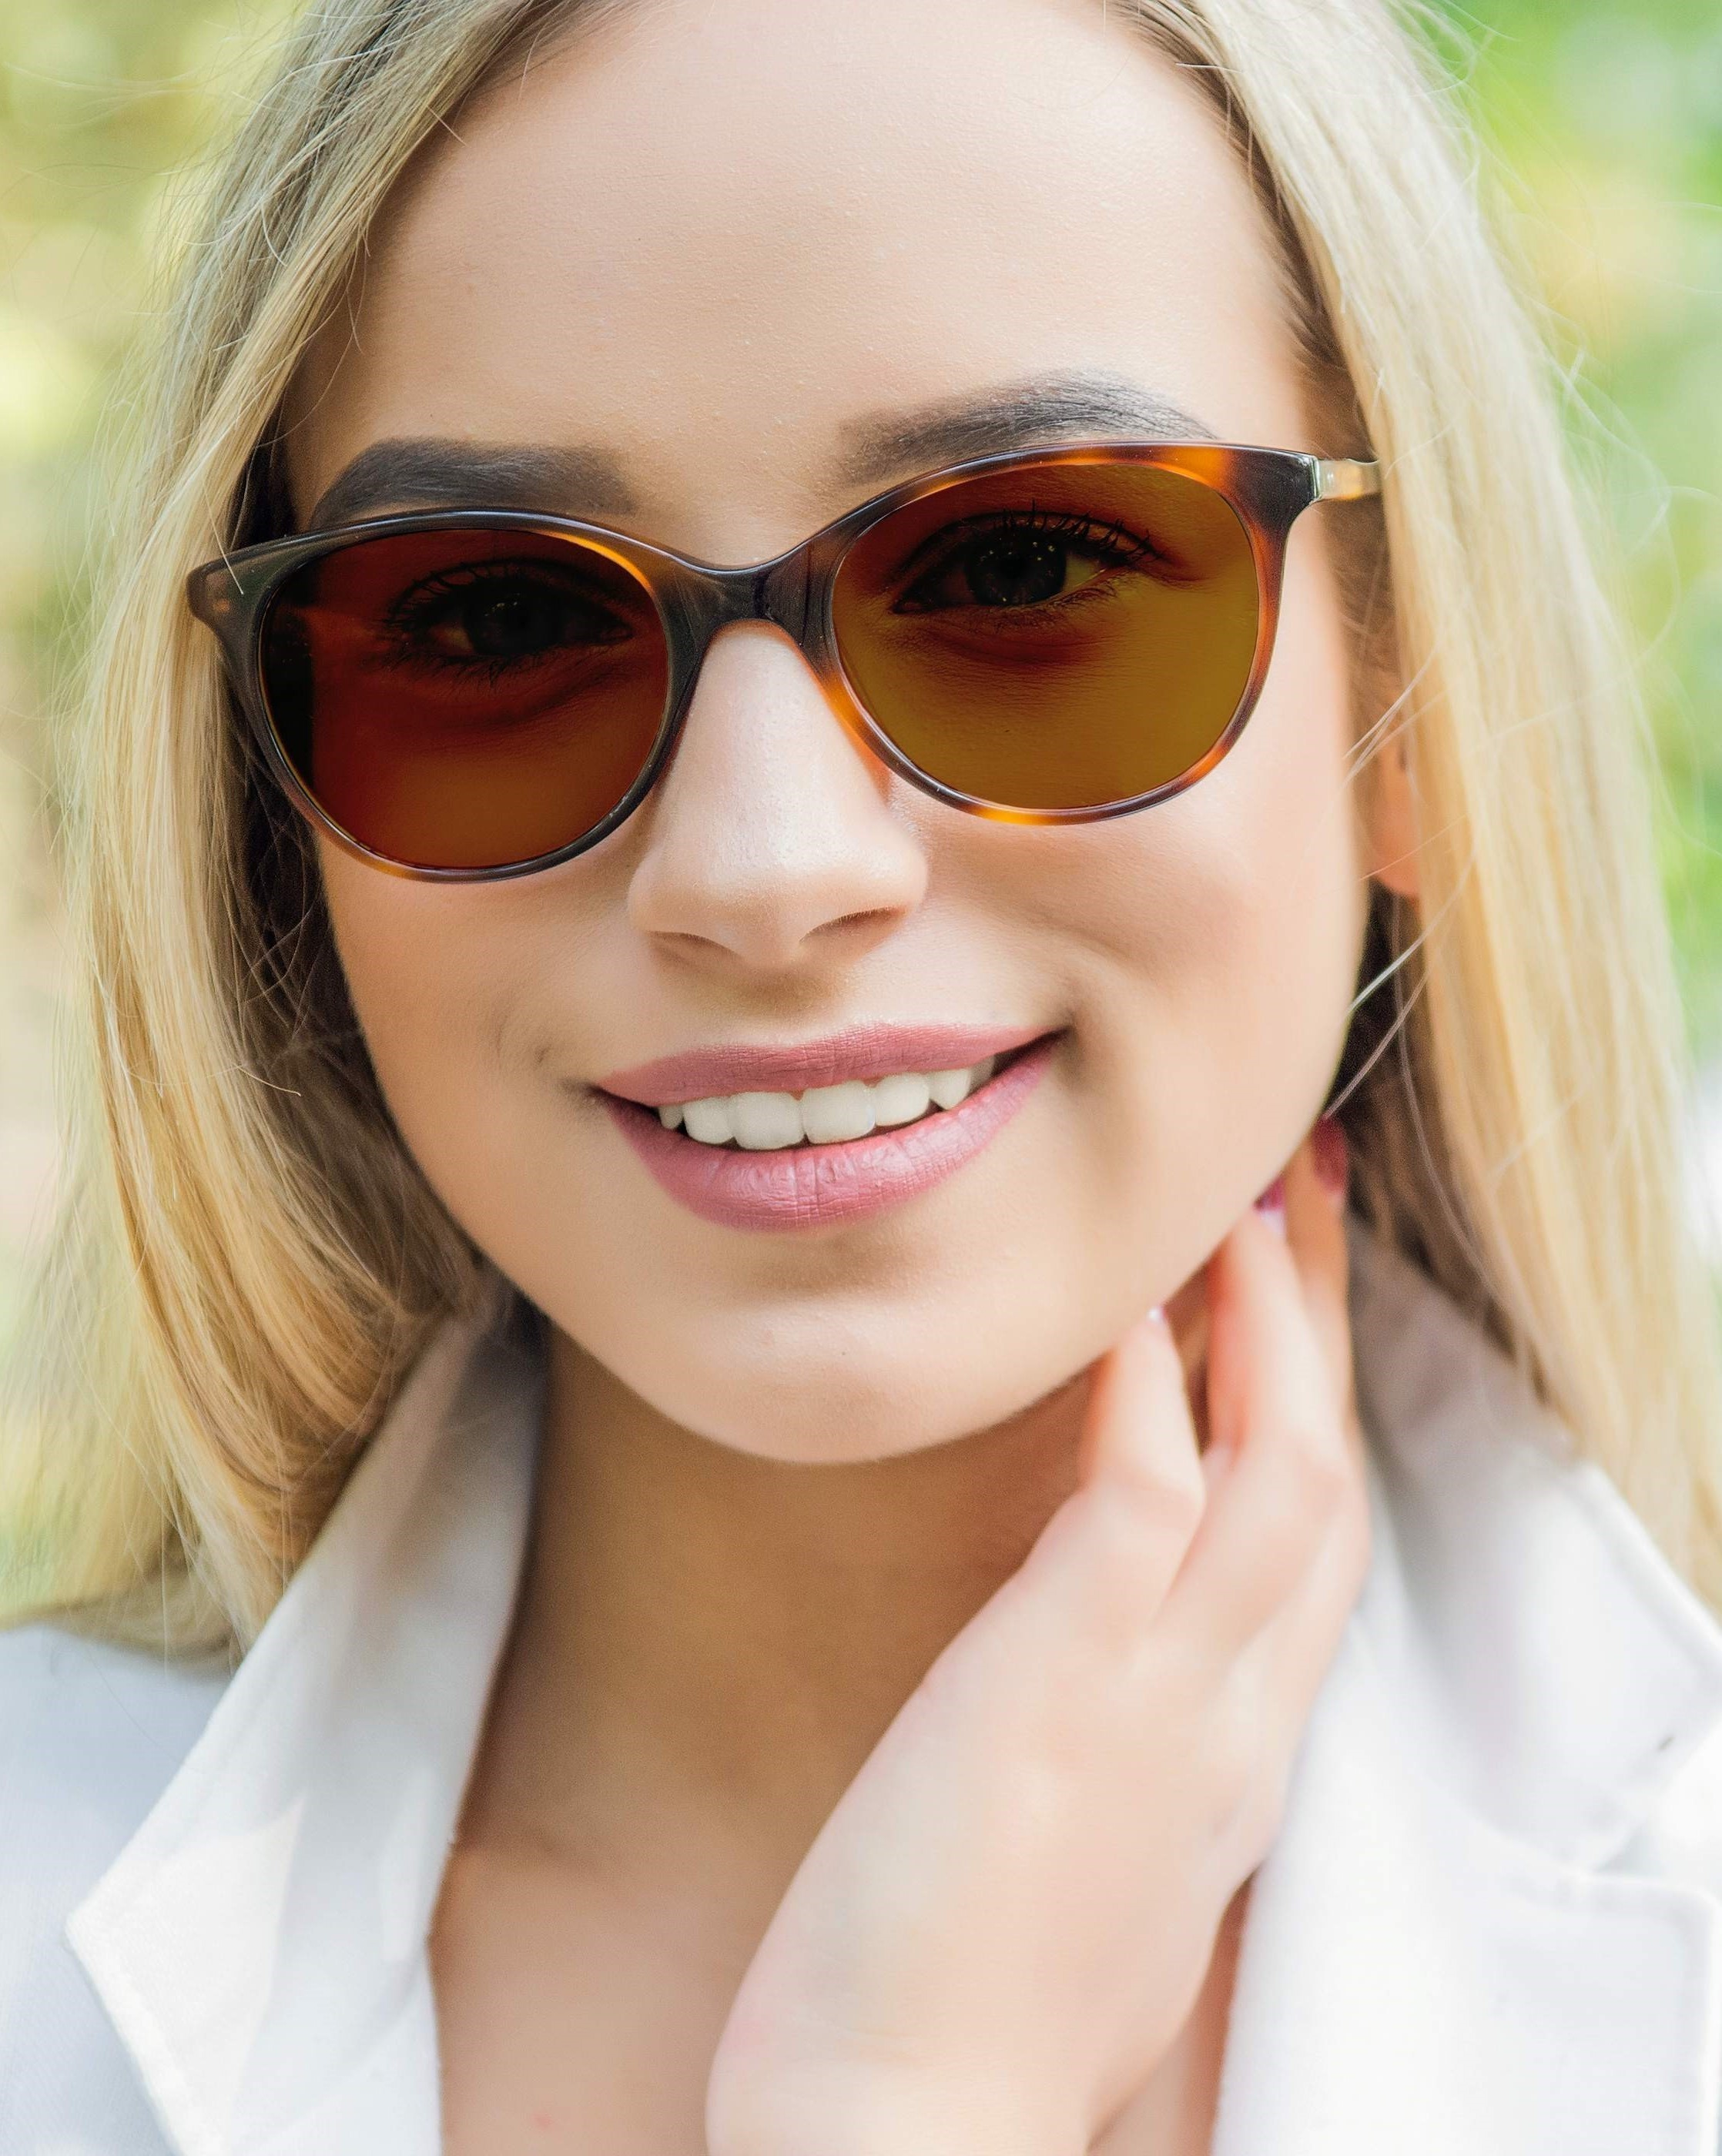 Kodak with Transitions®  Light Intelligent Lenses™ adapt to varying light conditions and are one of the best everyday lenses for active lifestyles.